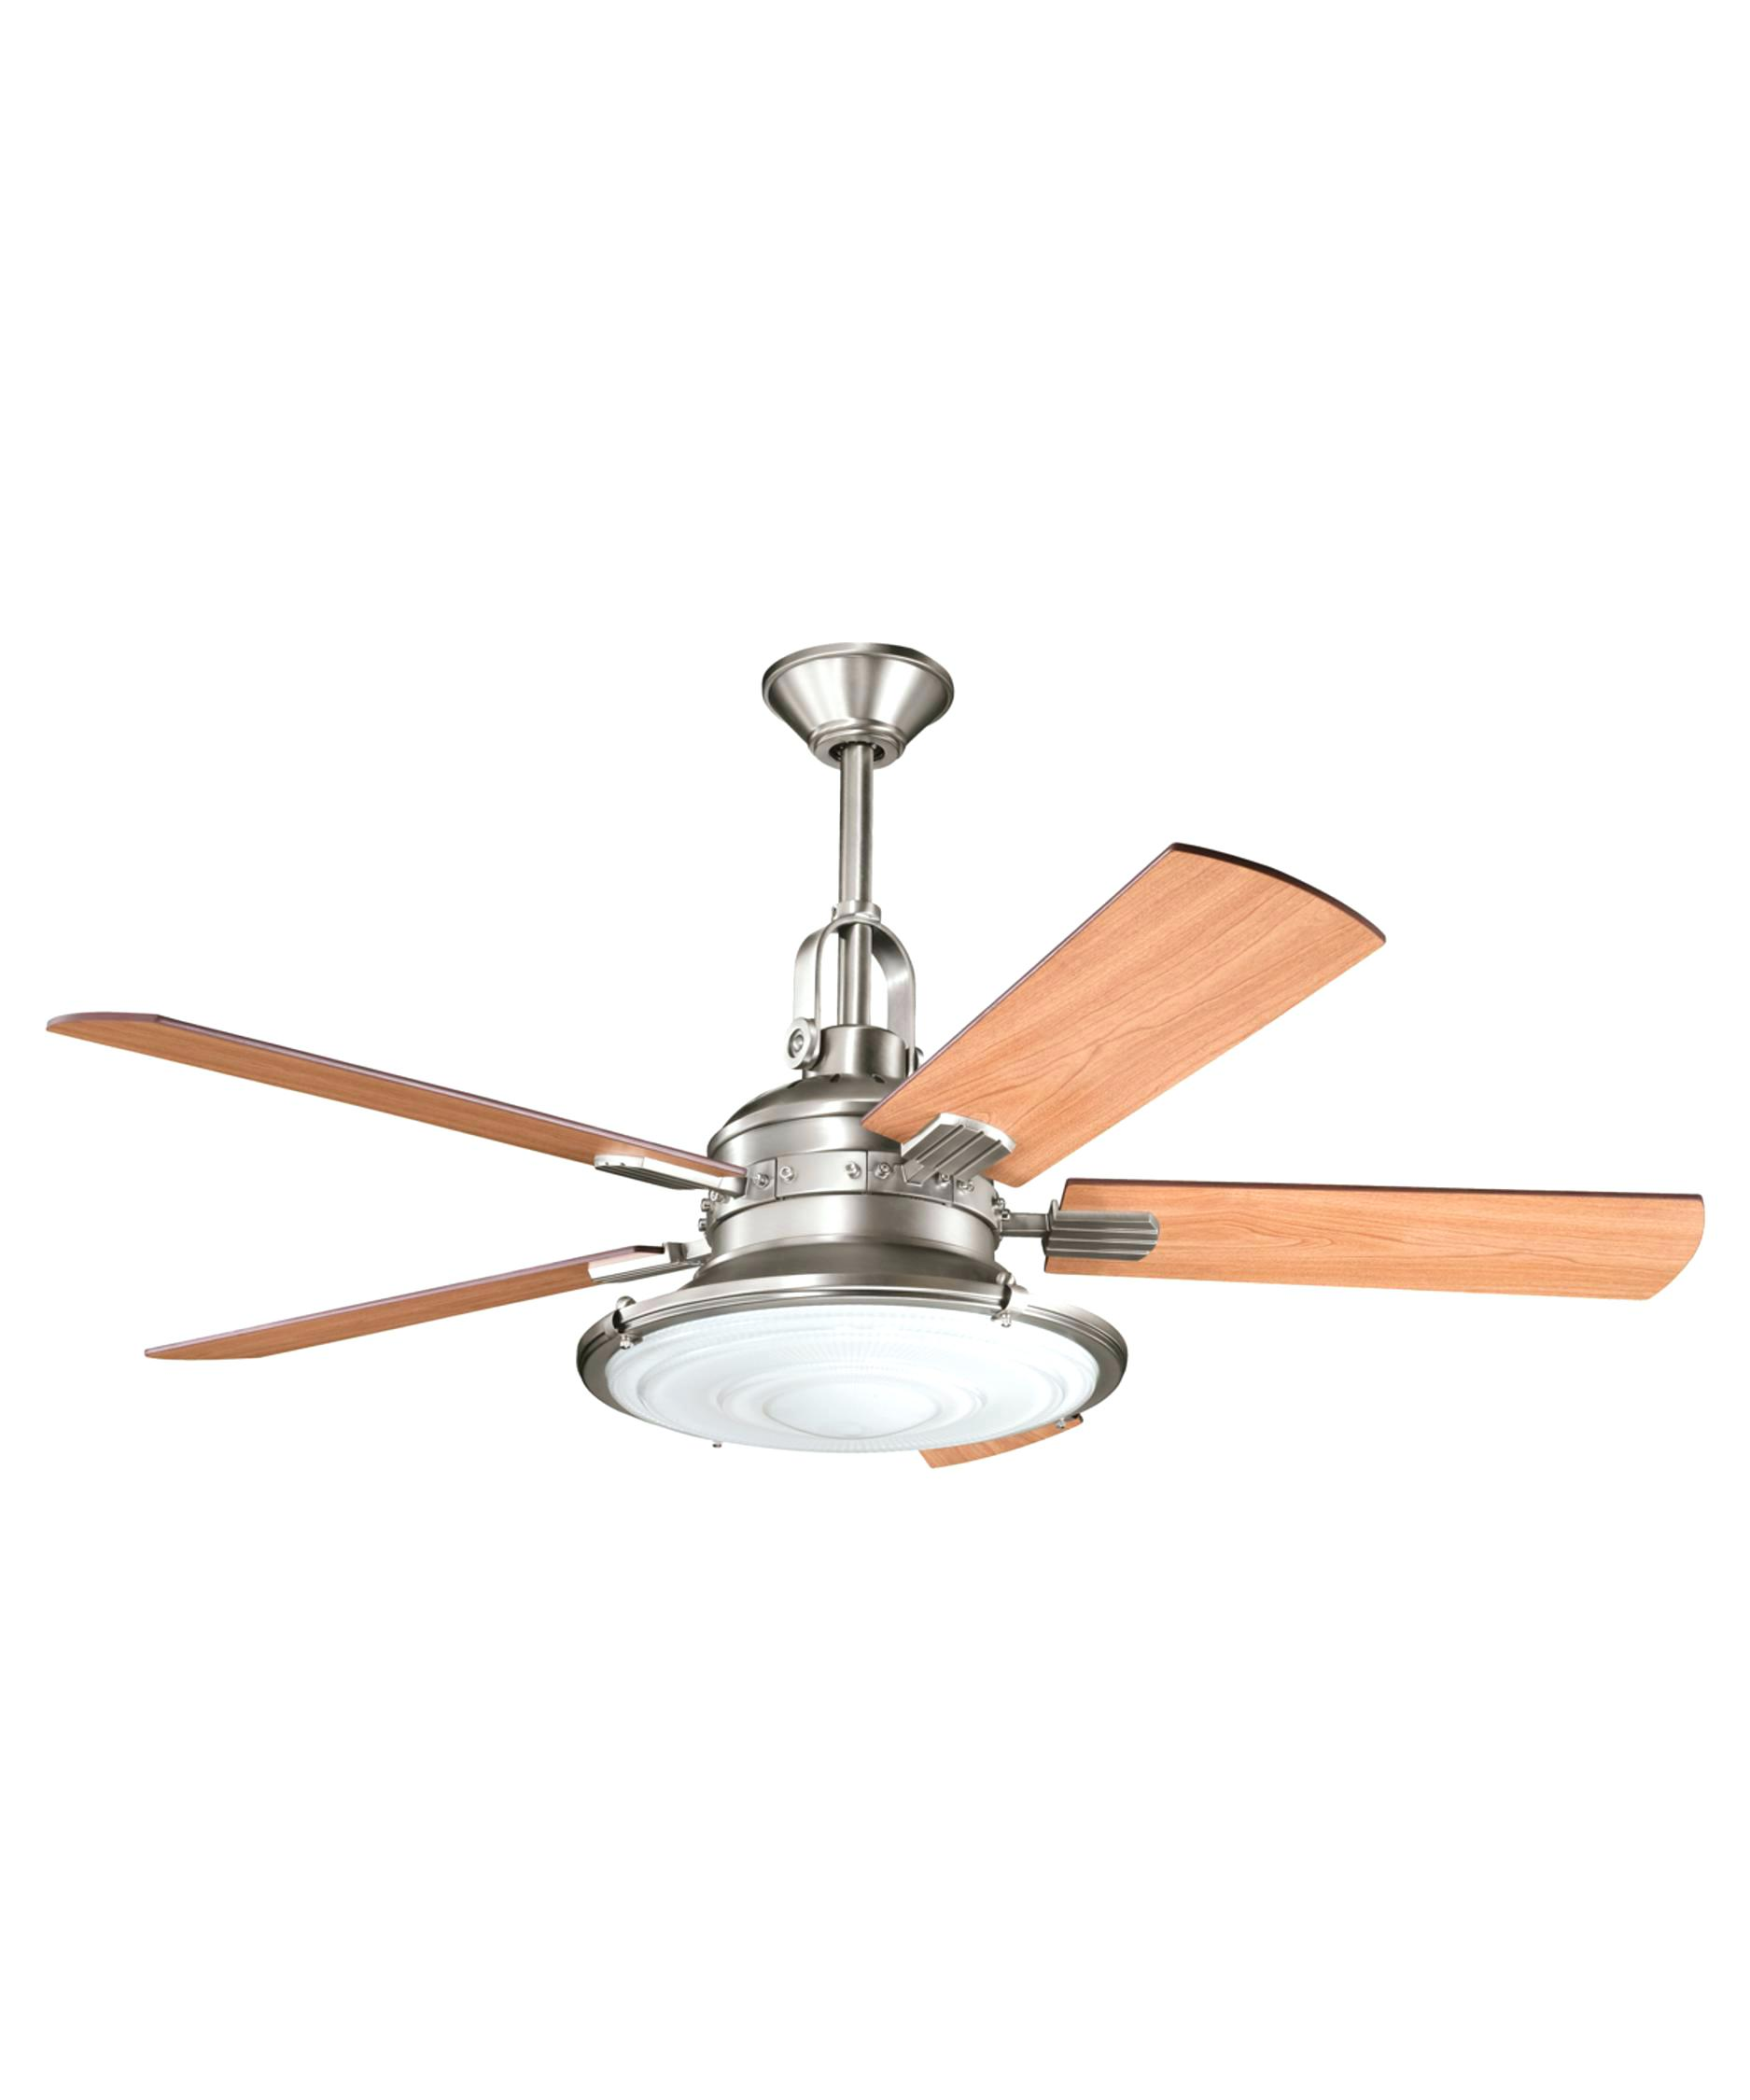 bronze outdoor ceiling oil galvanized best cool of fan vista quot rubbed